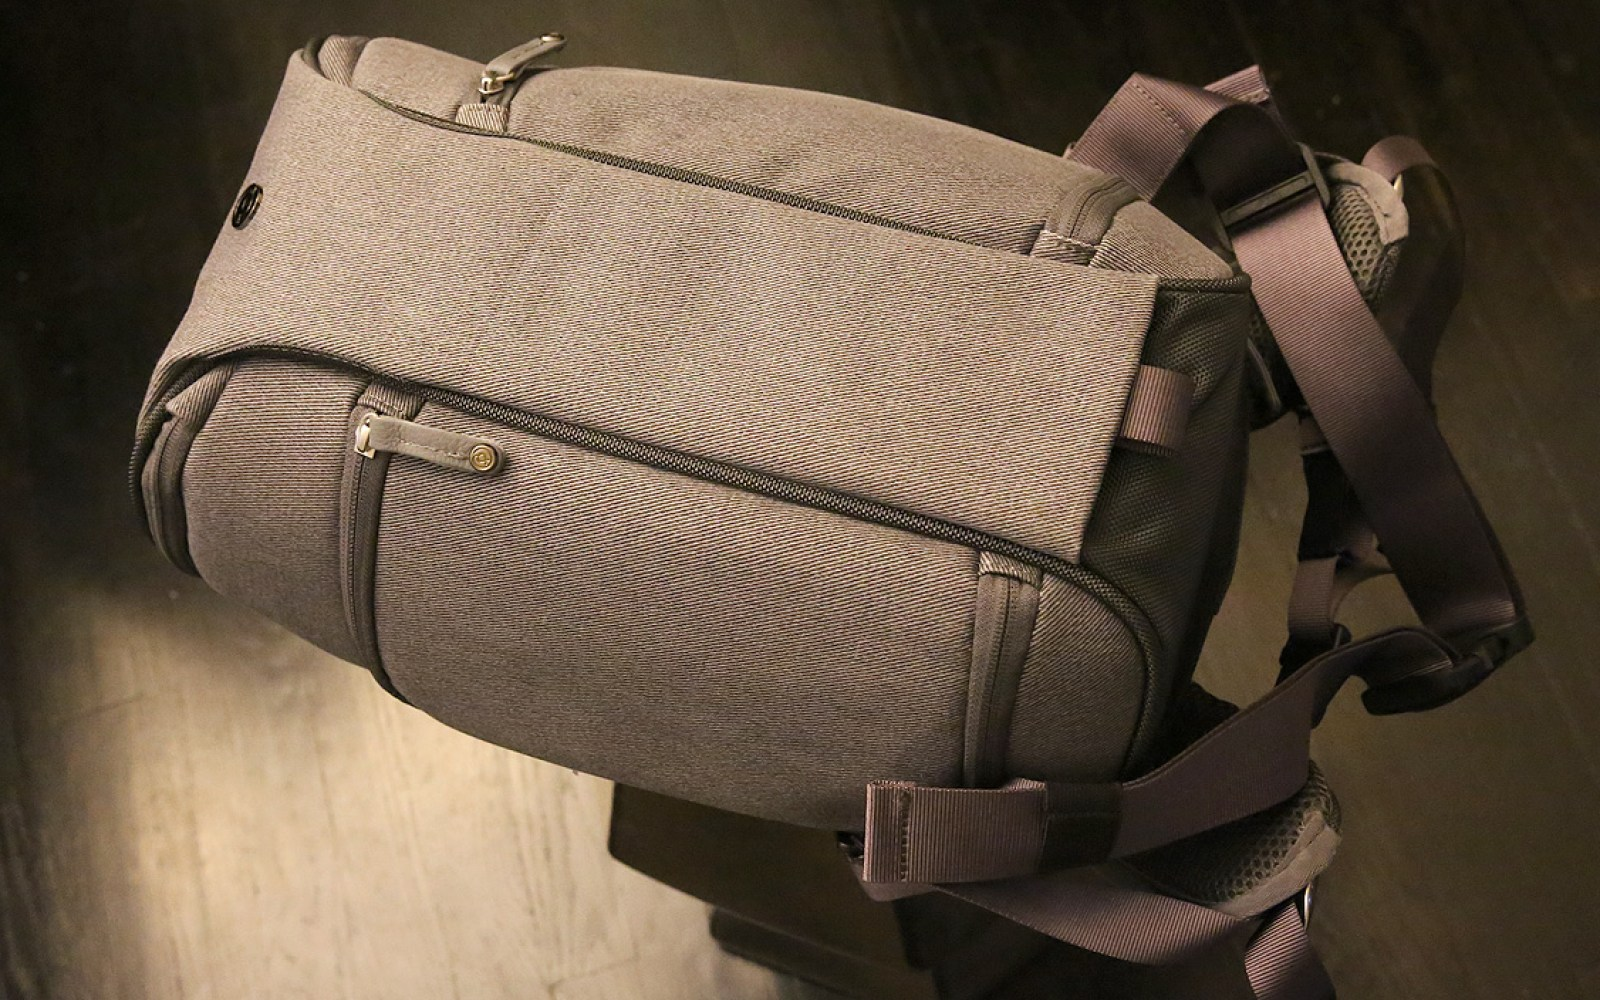 Review: Booq's Slimpack gives DSLR-toting MacBook users another all-in-one bag option